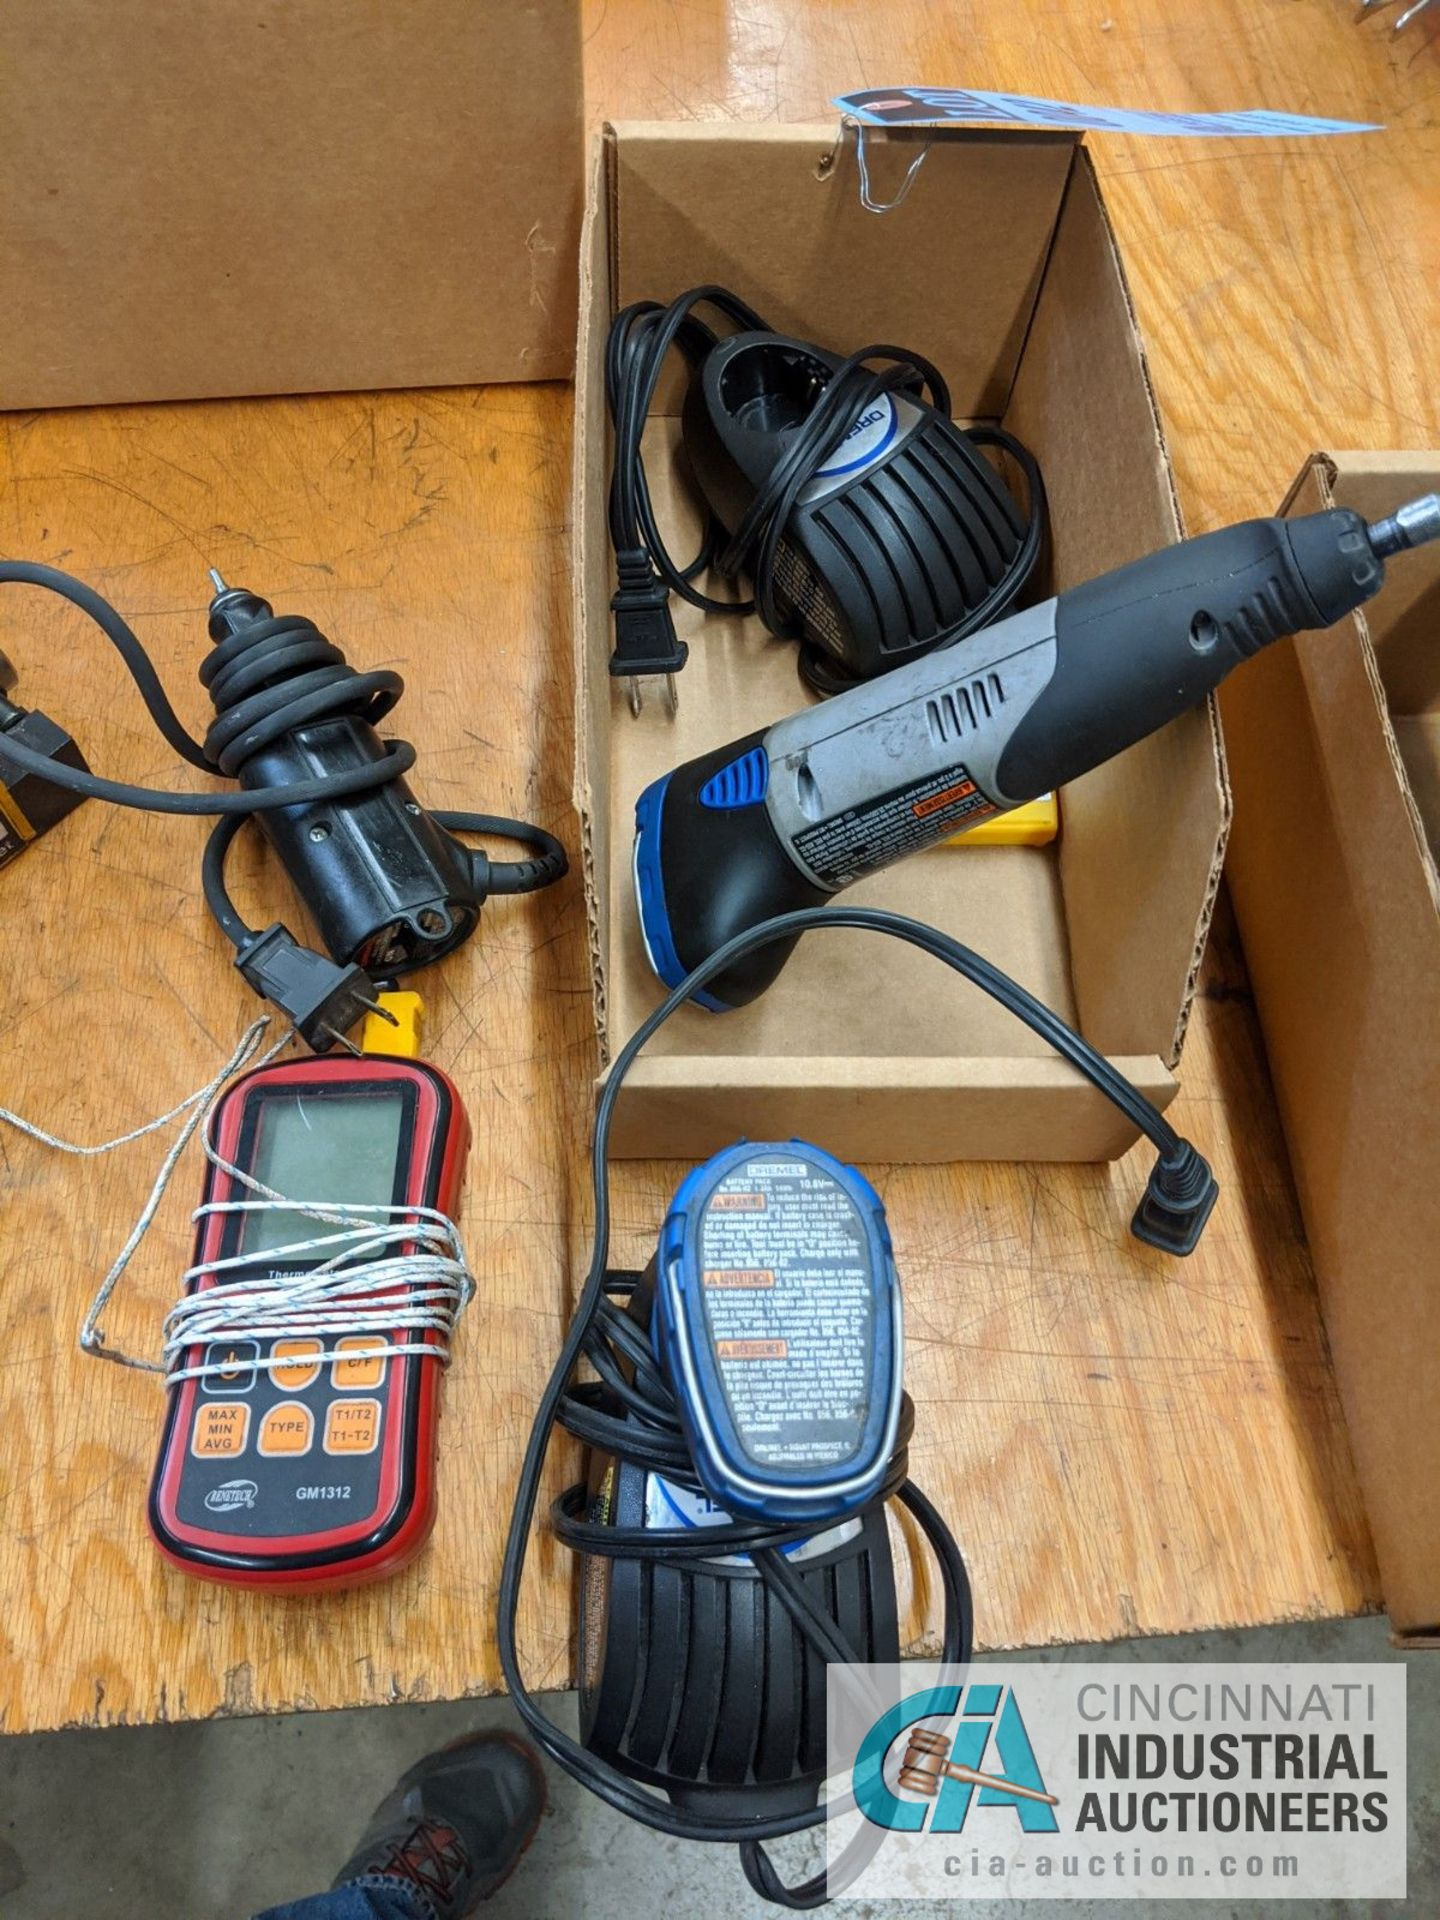 (LOT) DREMEL CORDLESS DIE GRINDER AND BENETECH DIGITAL THEROMETER - Image 2 of 2